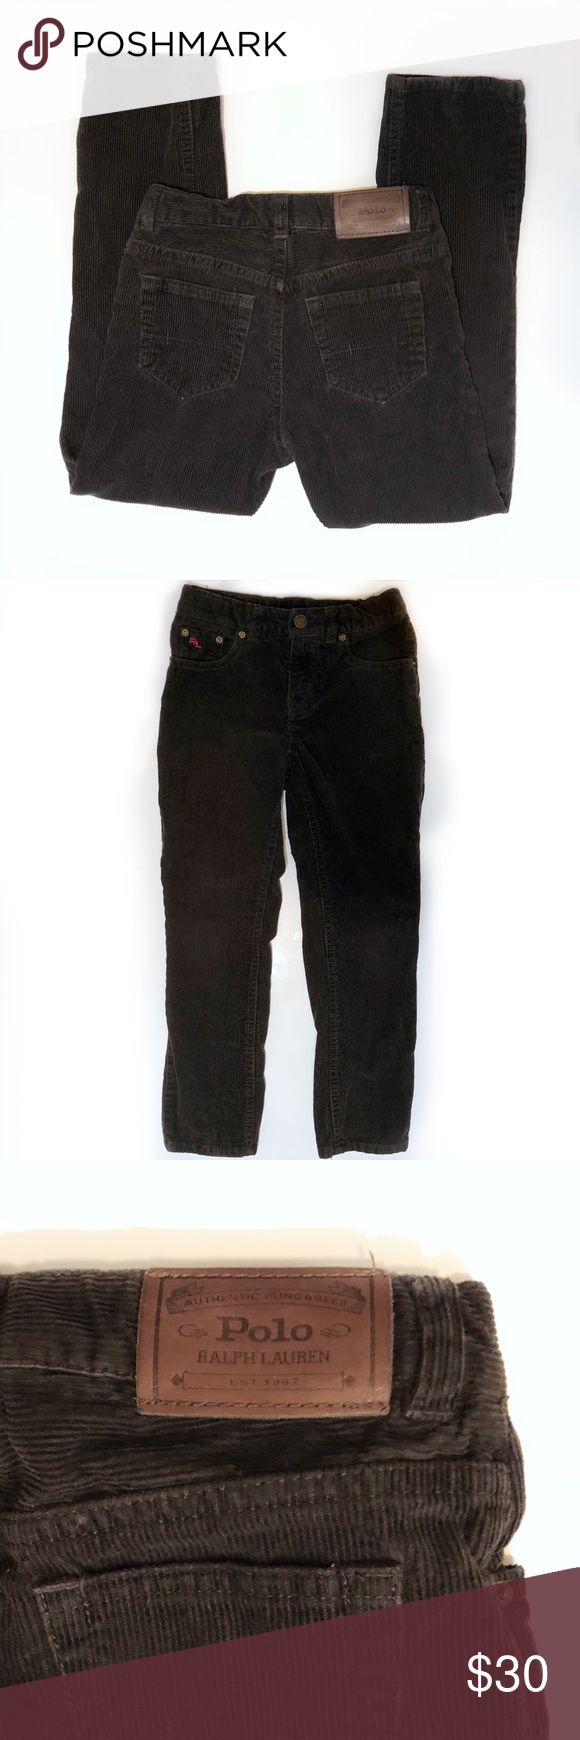 """Boys Polo Ralph Lauren Slim Fit Corduroy Pants Dark brown corduroy slim pants from Polo Ralph Lauren, boys size 5.  Excellent condition with no holes or stains and no fading!  19"""" inseam, adjustable waist.  Ships same or next day from smoke-free home! Polo by Ralph Lauren Bottoms"""